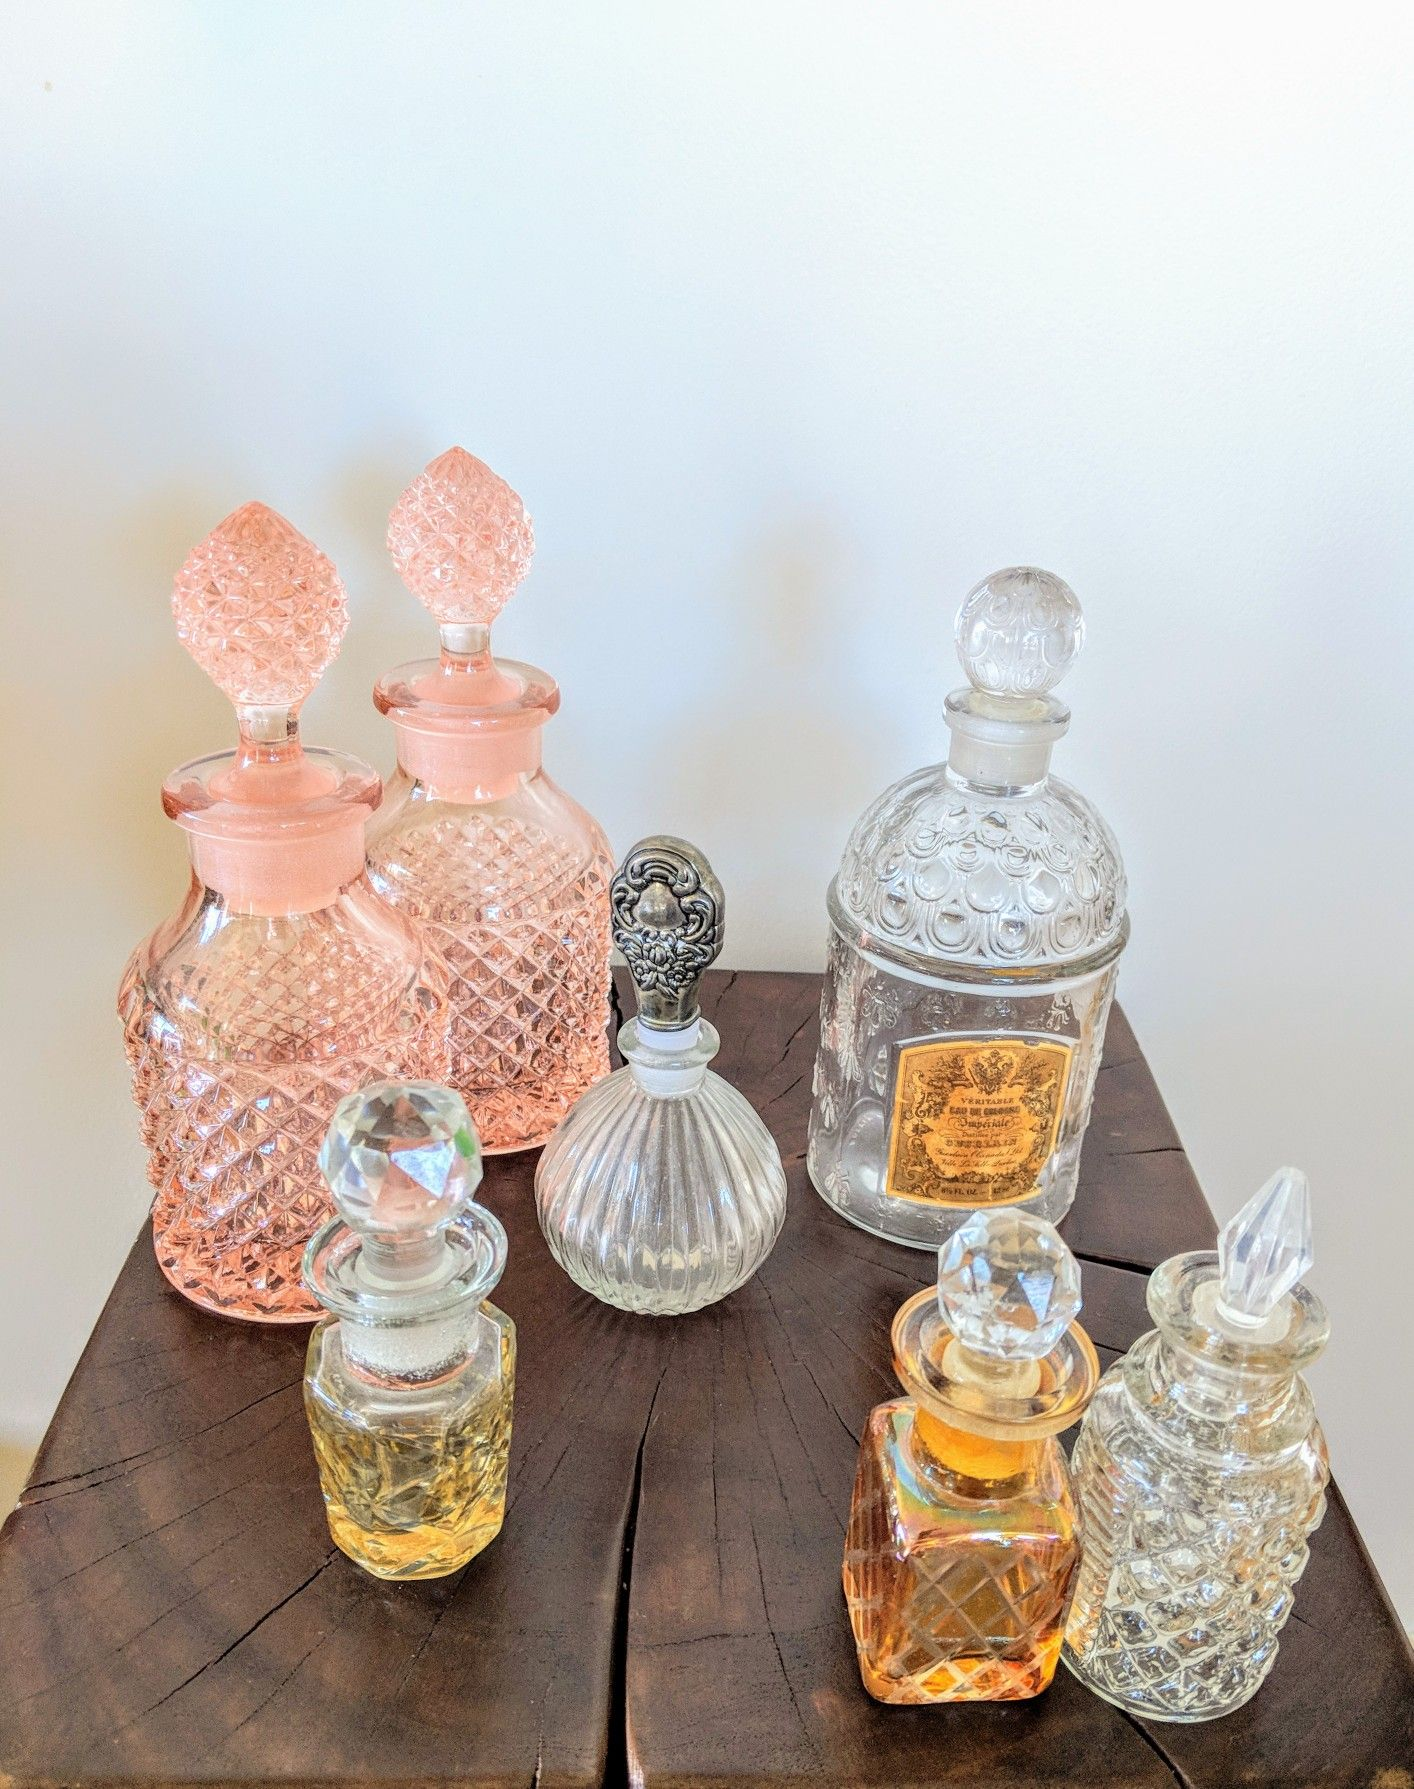 A Delightful Assortment Of Perfume Bottles With No Doubt A